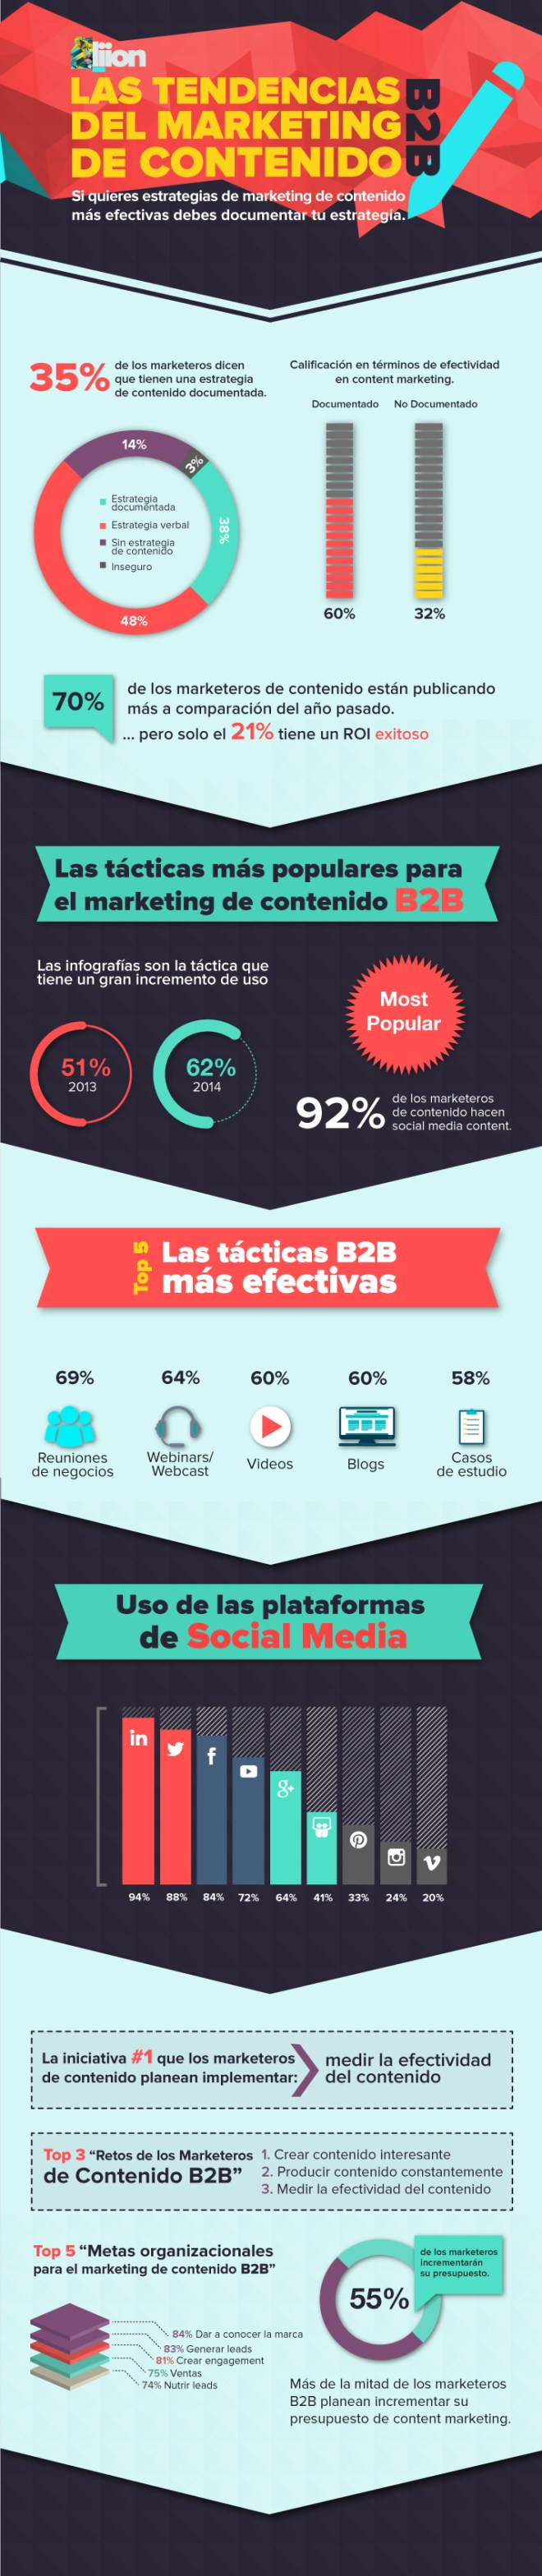 Tendencias de Marketing de Contenido B2B